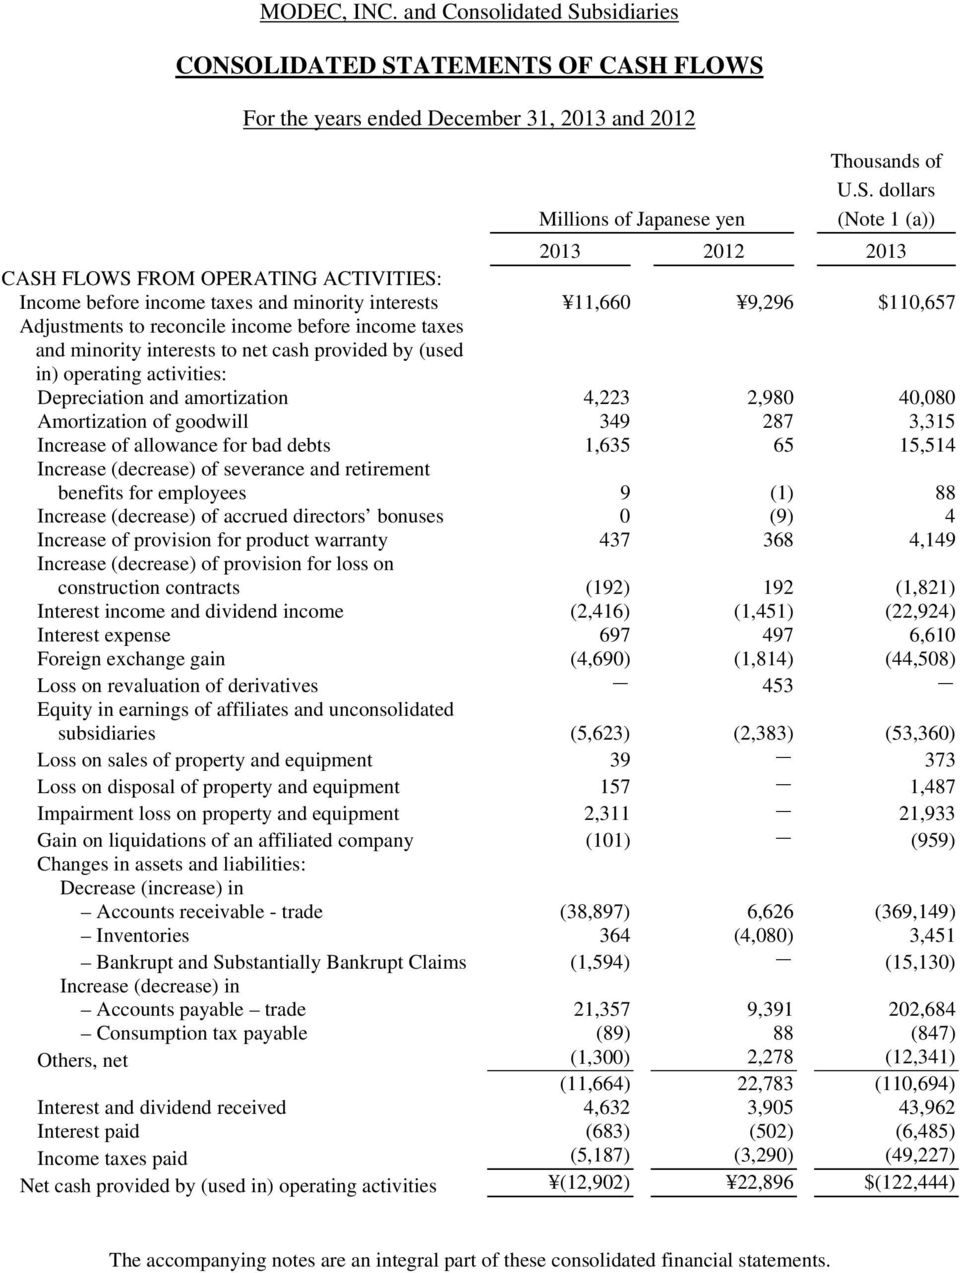 income taxes and minority interests 11,660 9,296 $110,657 Adjustments to reconcile income before income taxes and minority interests to net cash provided by (used in) operating activities: